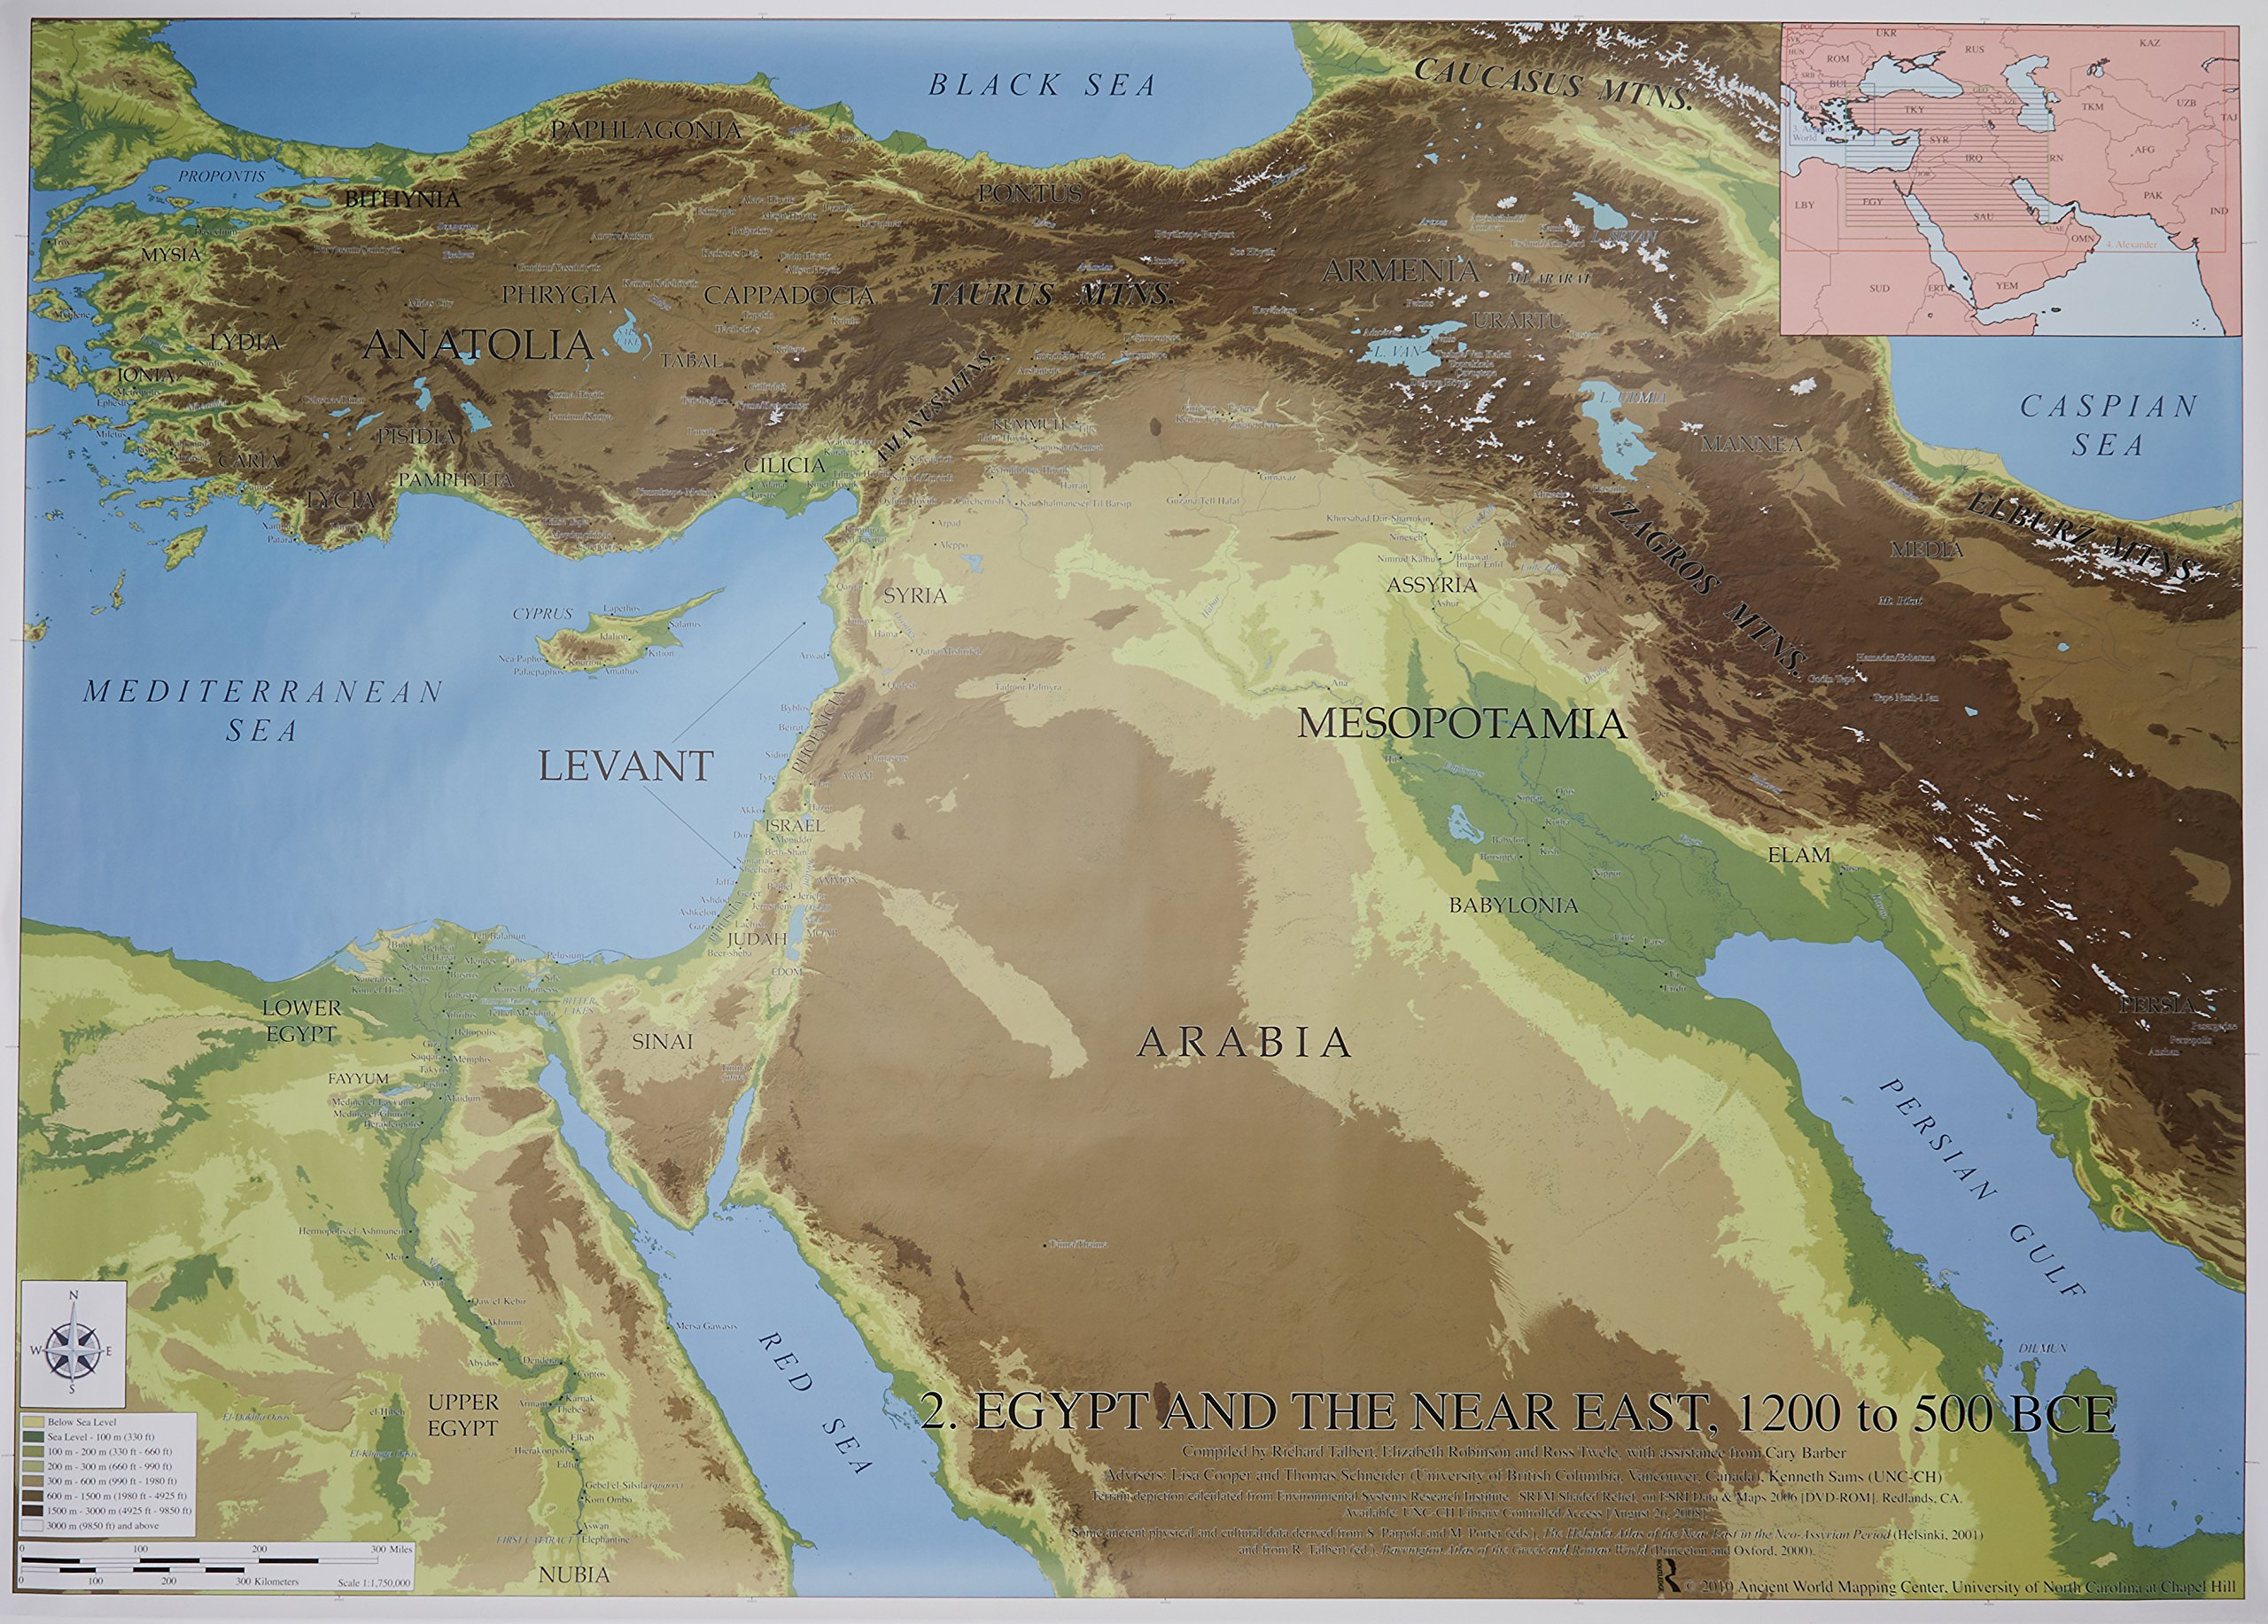 Buy Egypt and the Near East 1200 - 500 BCE: Routledge Wall Maps for ...